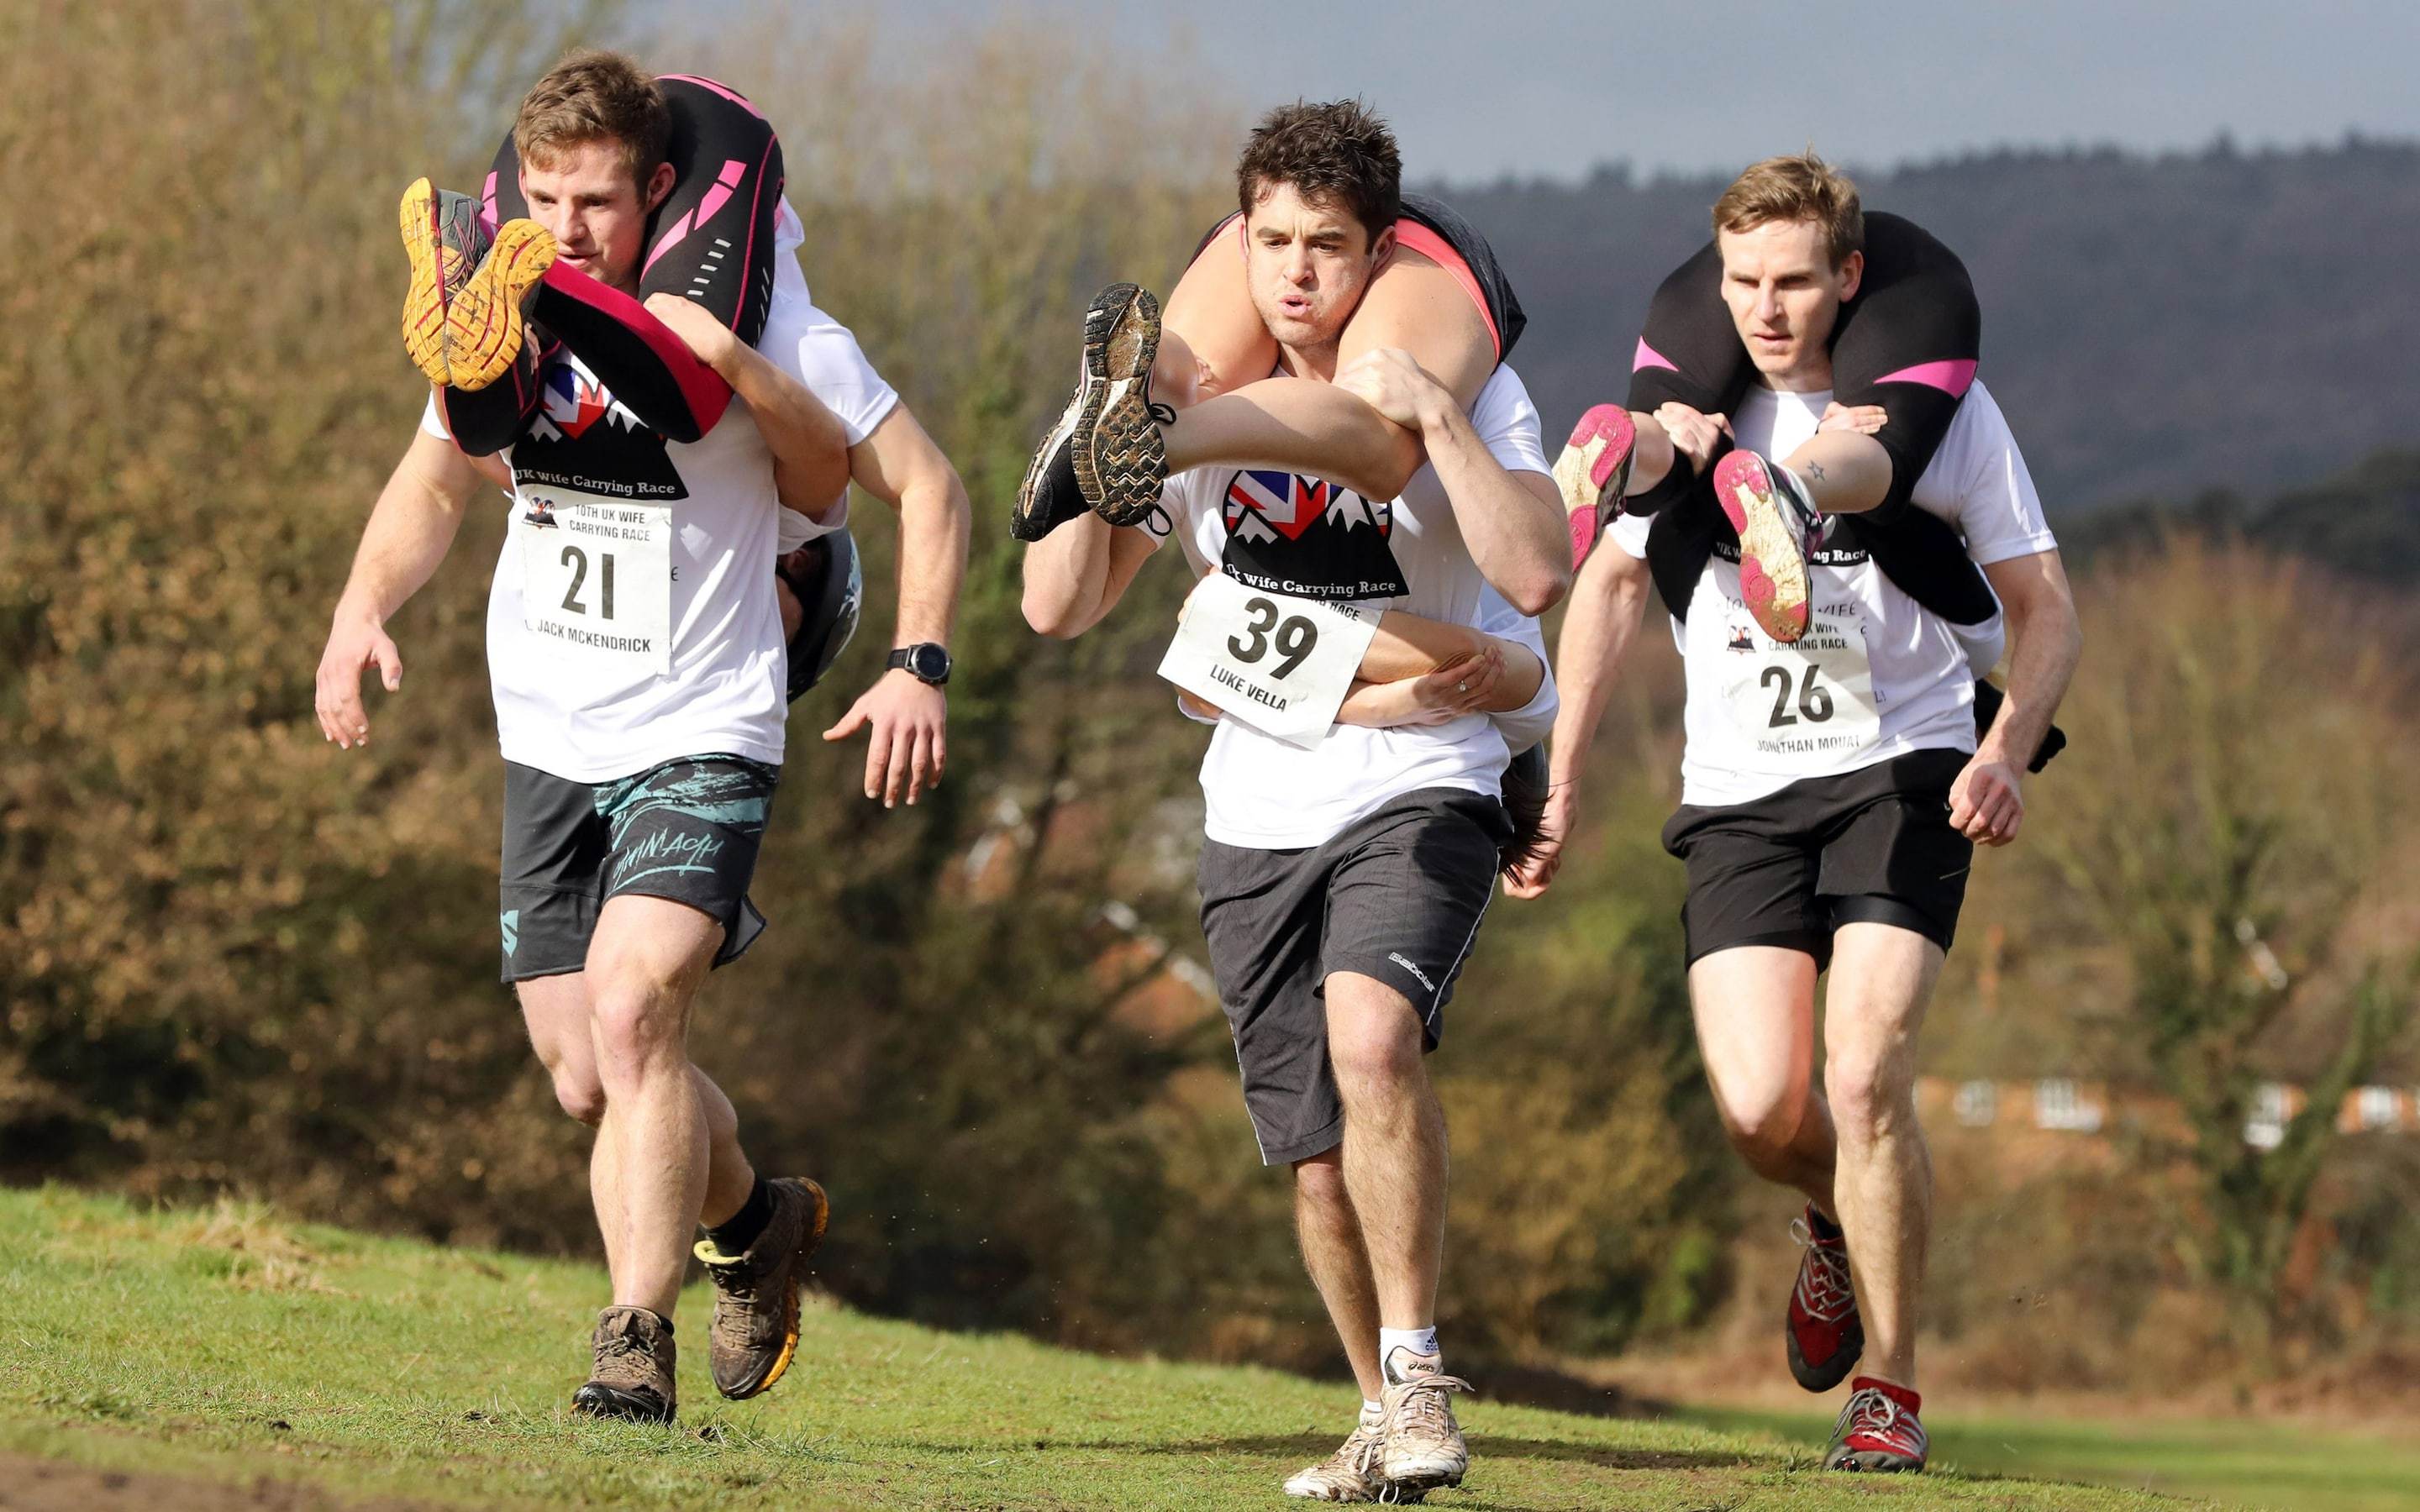 Wife Carrying Race in Dorking Surrey  Its the unPC Olympics Husbands heave their spouses